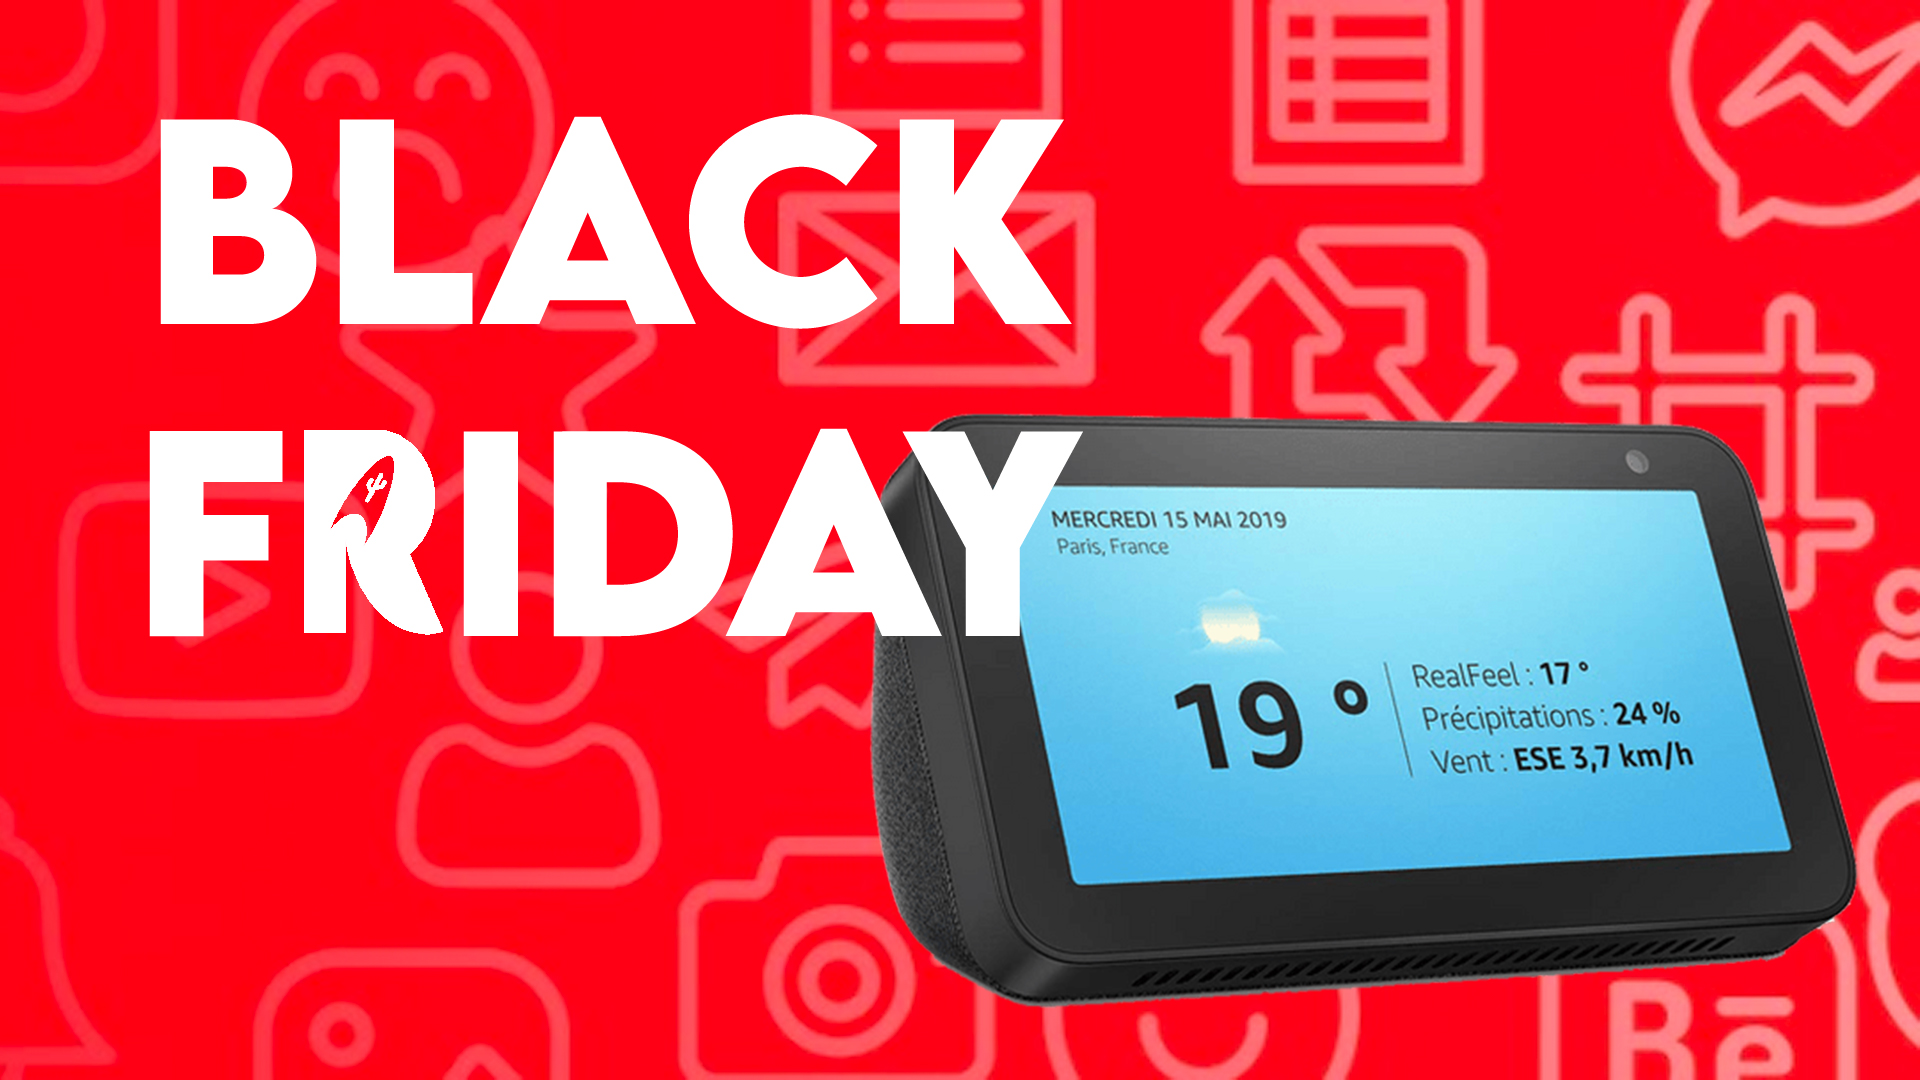 L'Echo Show 5 d'Amazon à 45€ pour le Black Friday 2020 !